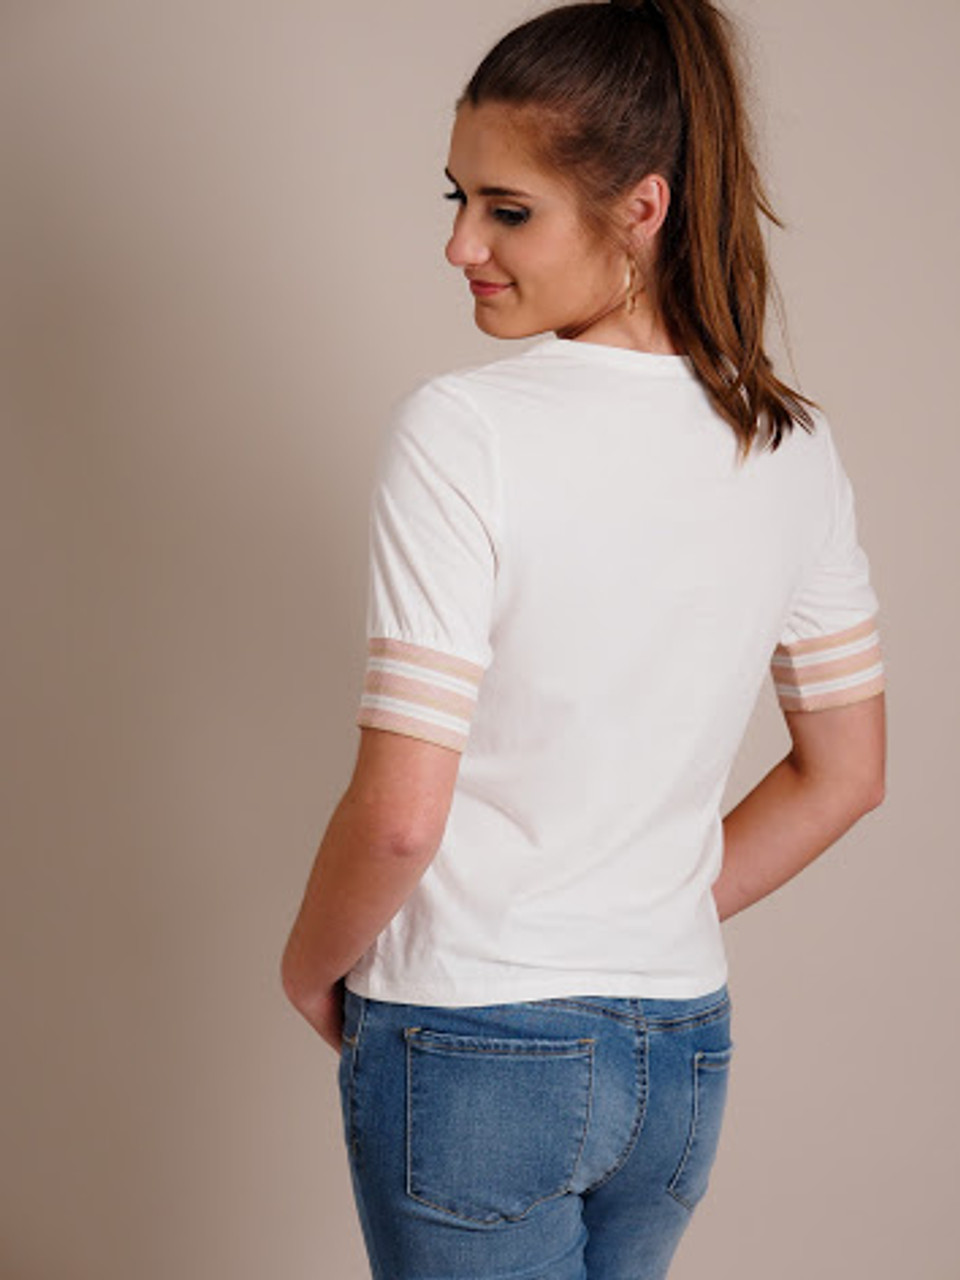 Casual White Tee with Striped Sleeve